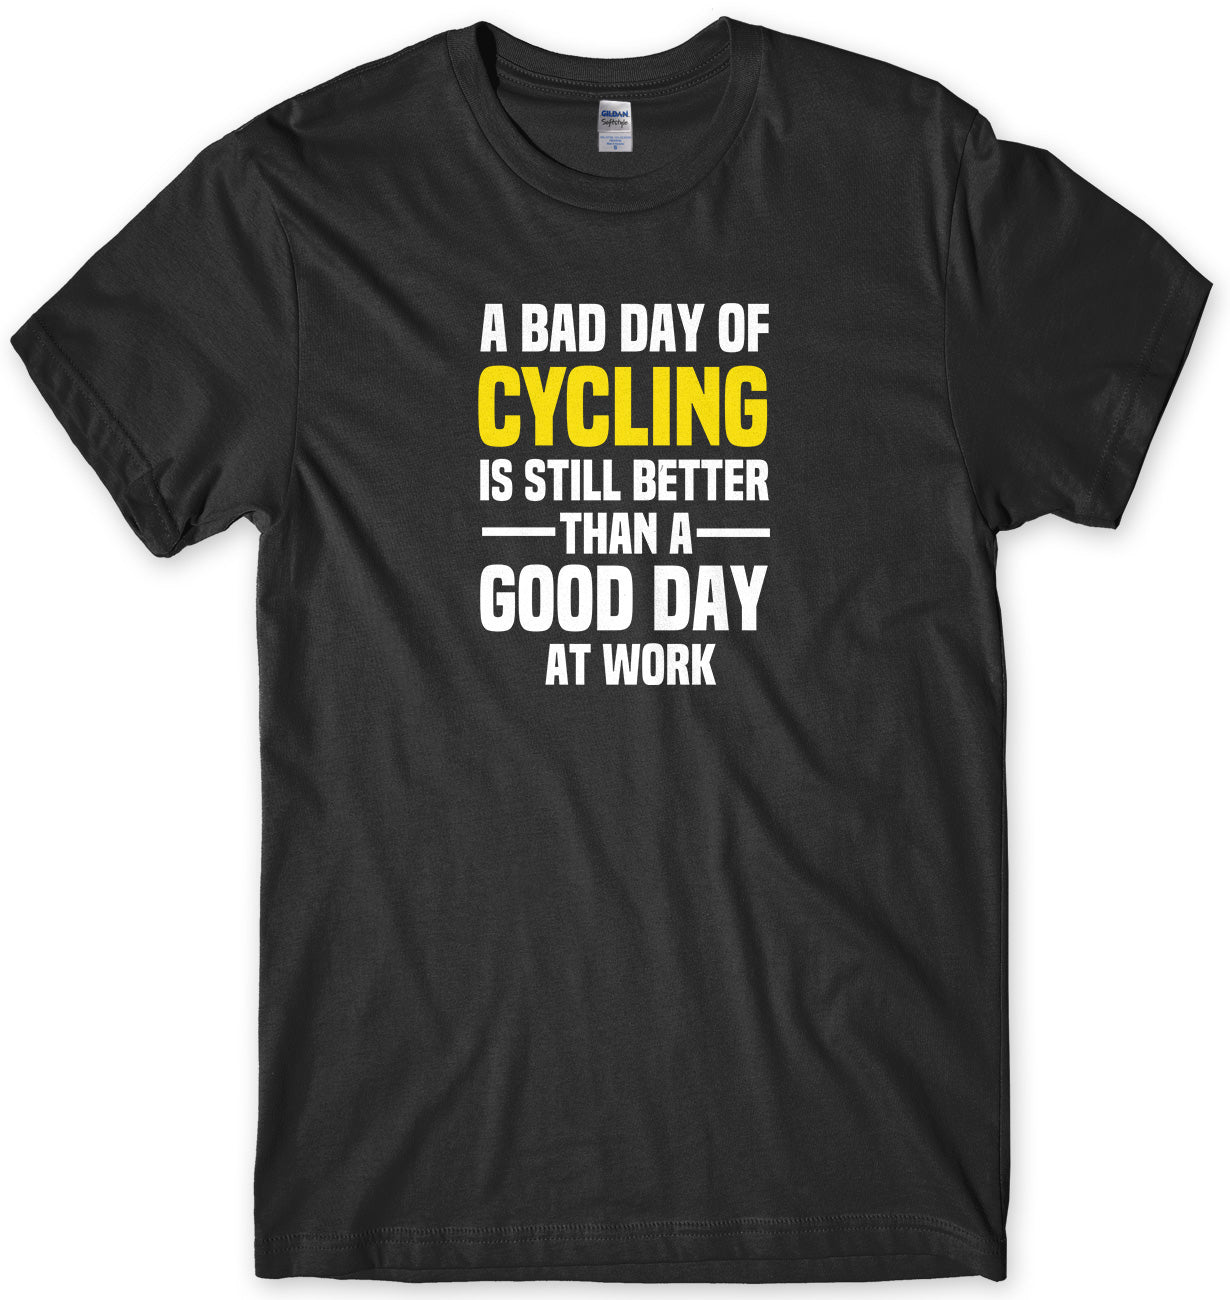 A BAD DAY OF CYCLING IS STILL BETTER THAN A GOOD DAY AT WORK MENS FUNNY SLOGAN UNISEX T-SHIRT - StreetSide Surgeons